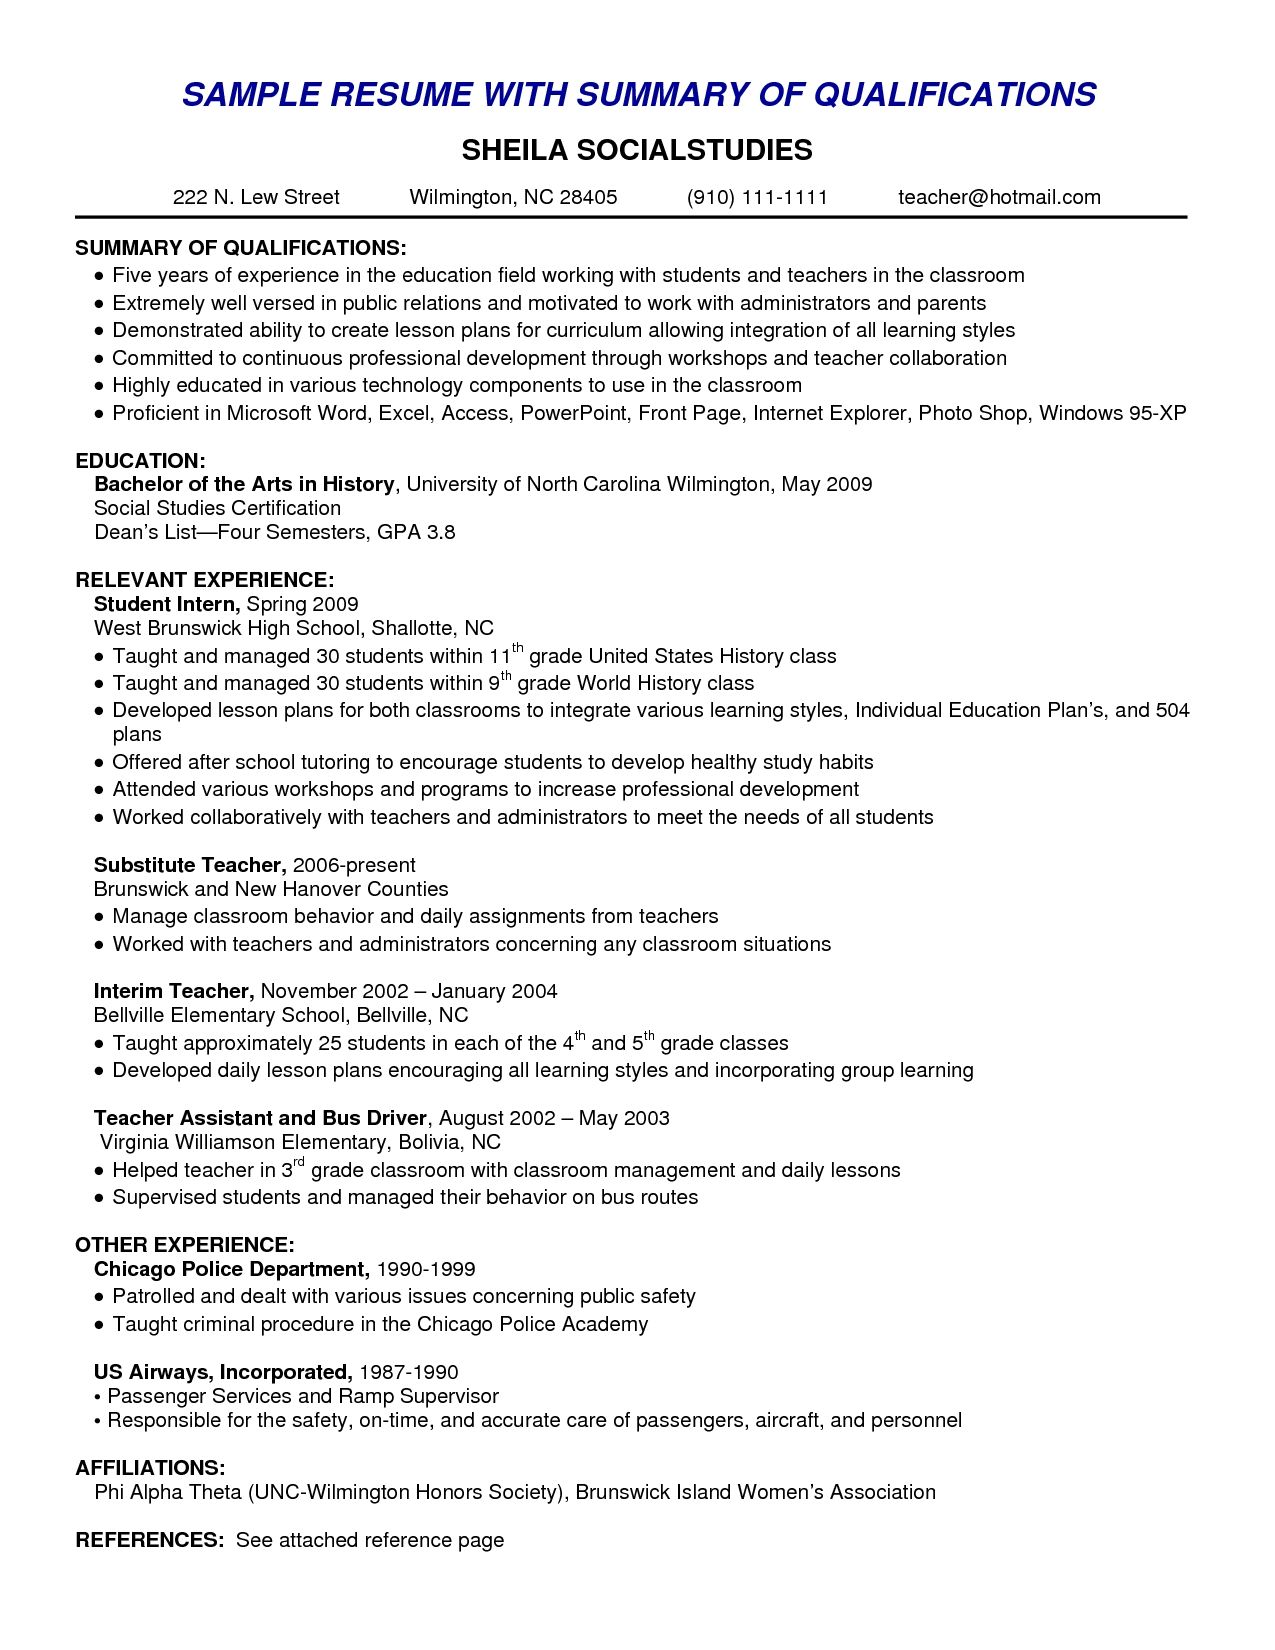 With Summary | Resume Examples | Pinterest | Sample resume, Resume ...